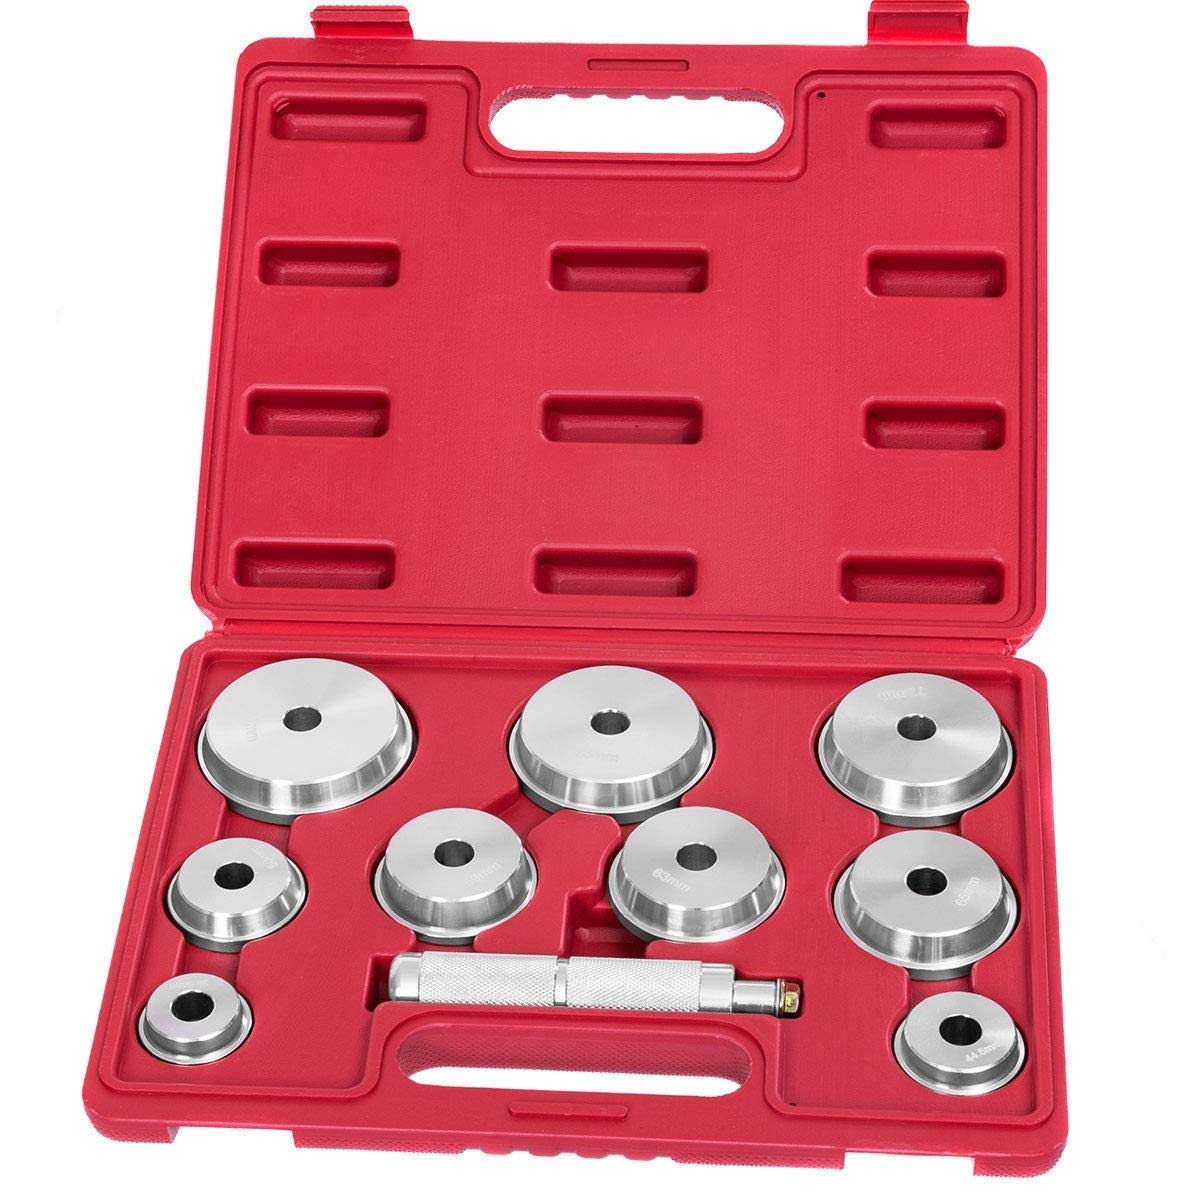 LordBee 10 pcs New Aluminum Alloy Wheel Bearing Race and Seal Driver Set Storage Carrying Case by LordBee